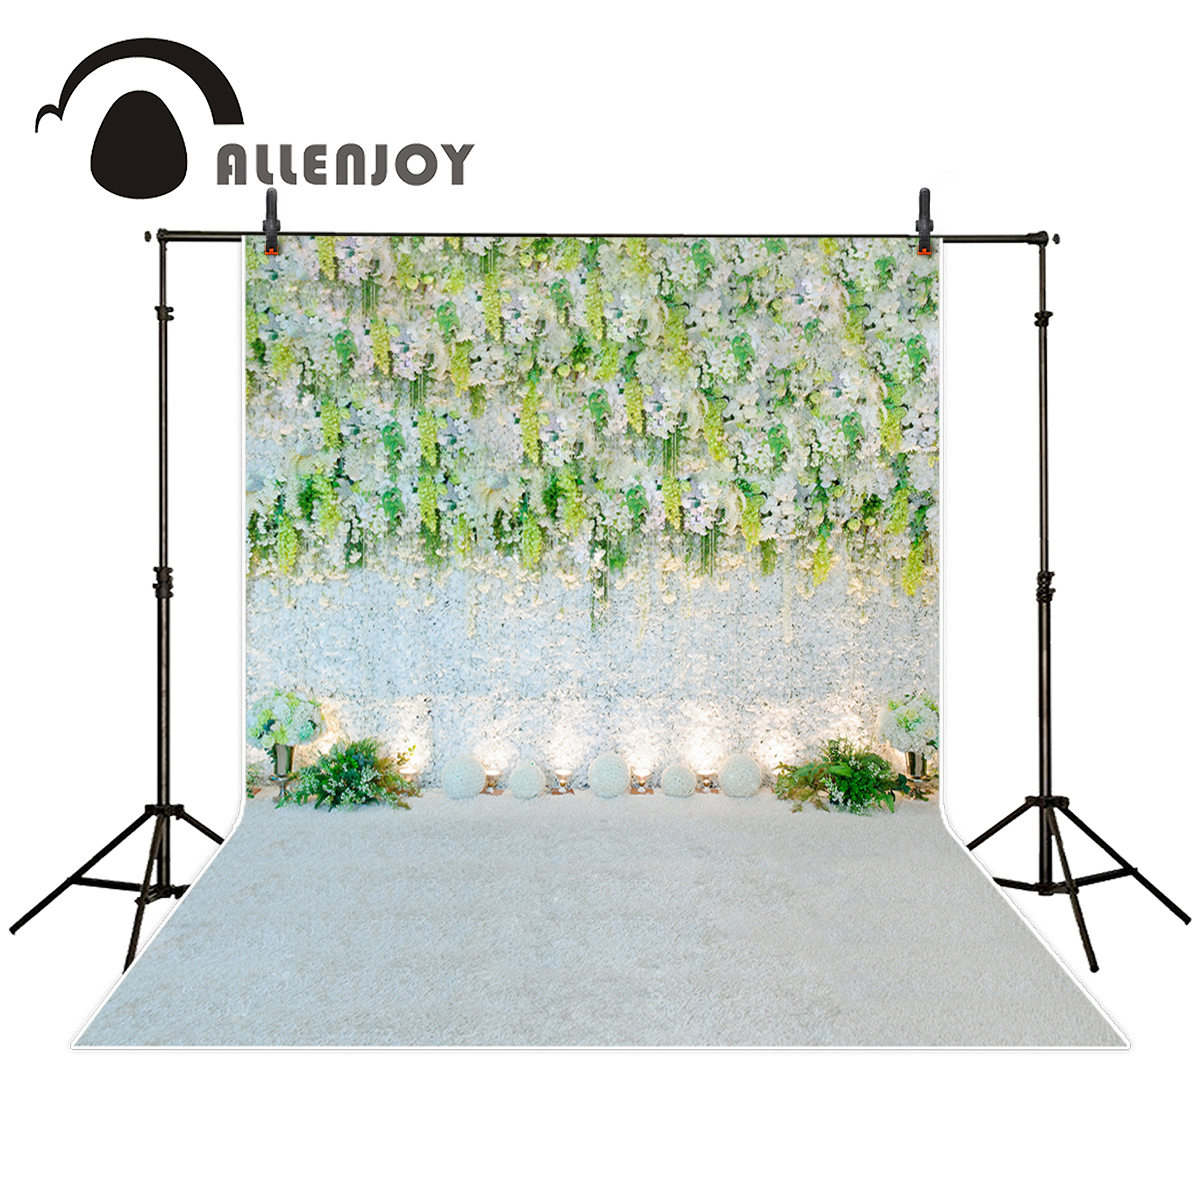 Allenjoy photography backdrop Romantic wedding white flower plant background photo studio new design camera fotografica allenjoy photography backdrop flower door wedding children painting colorful background photo studio photocall photo shoot